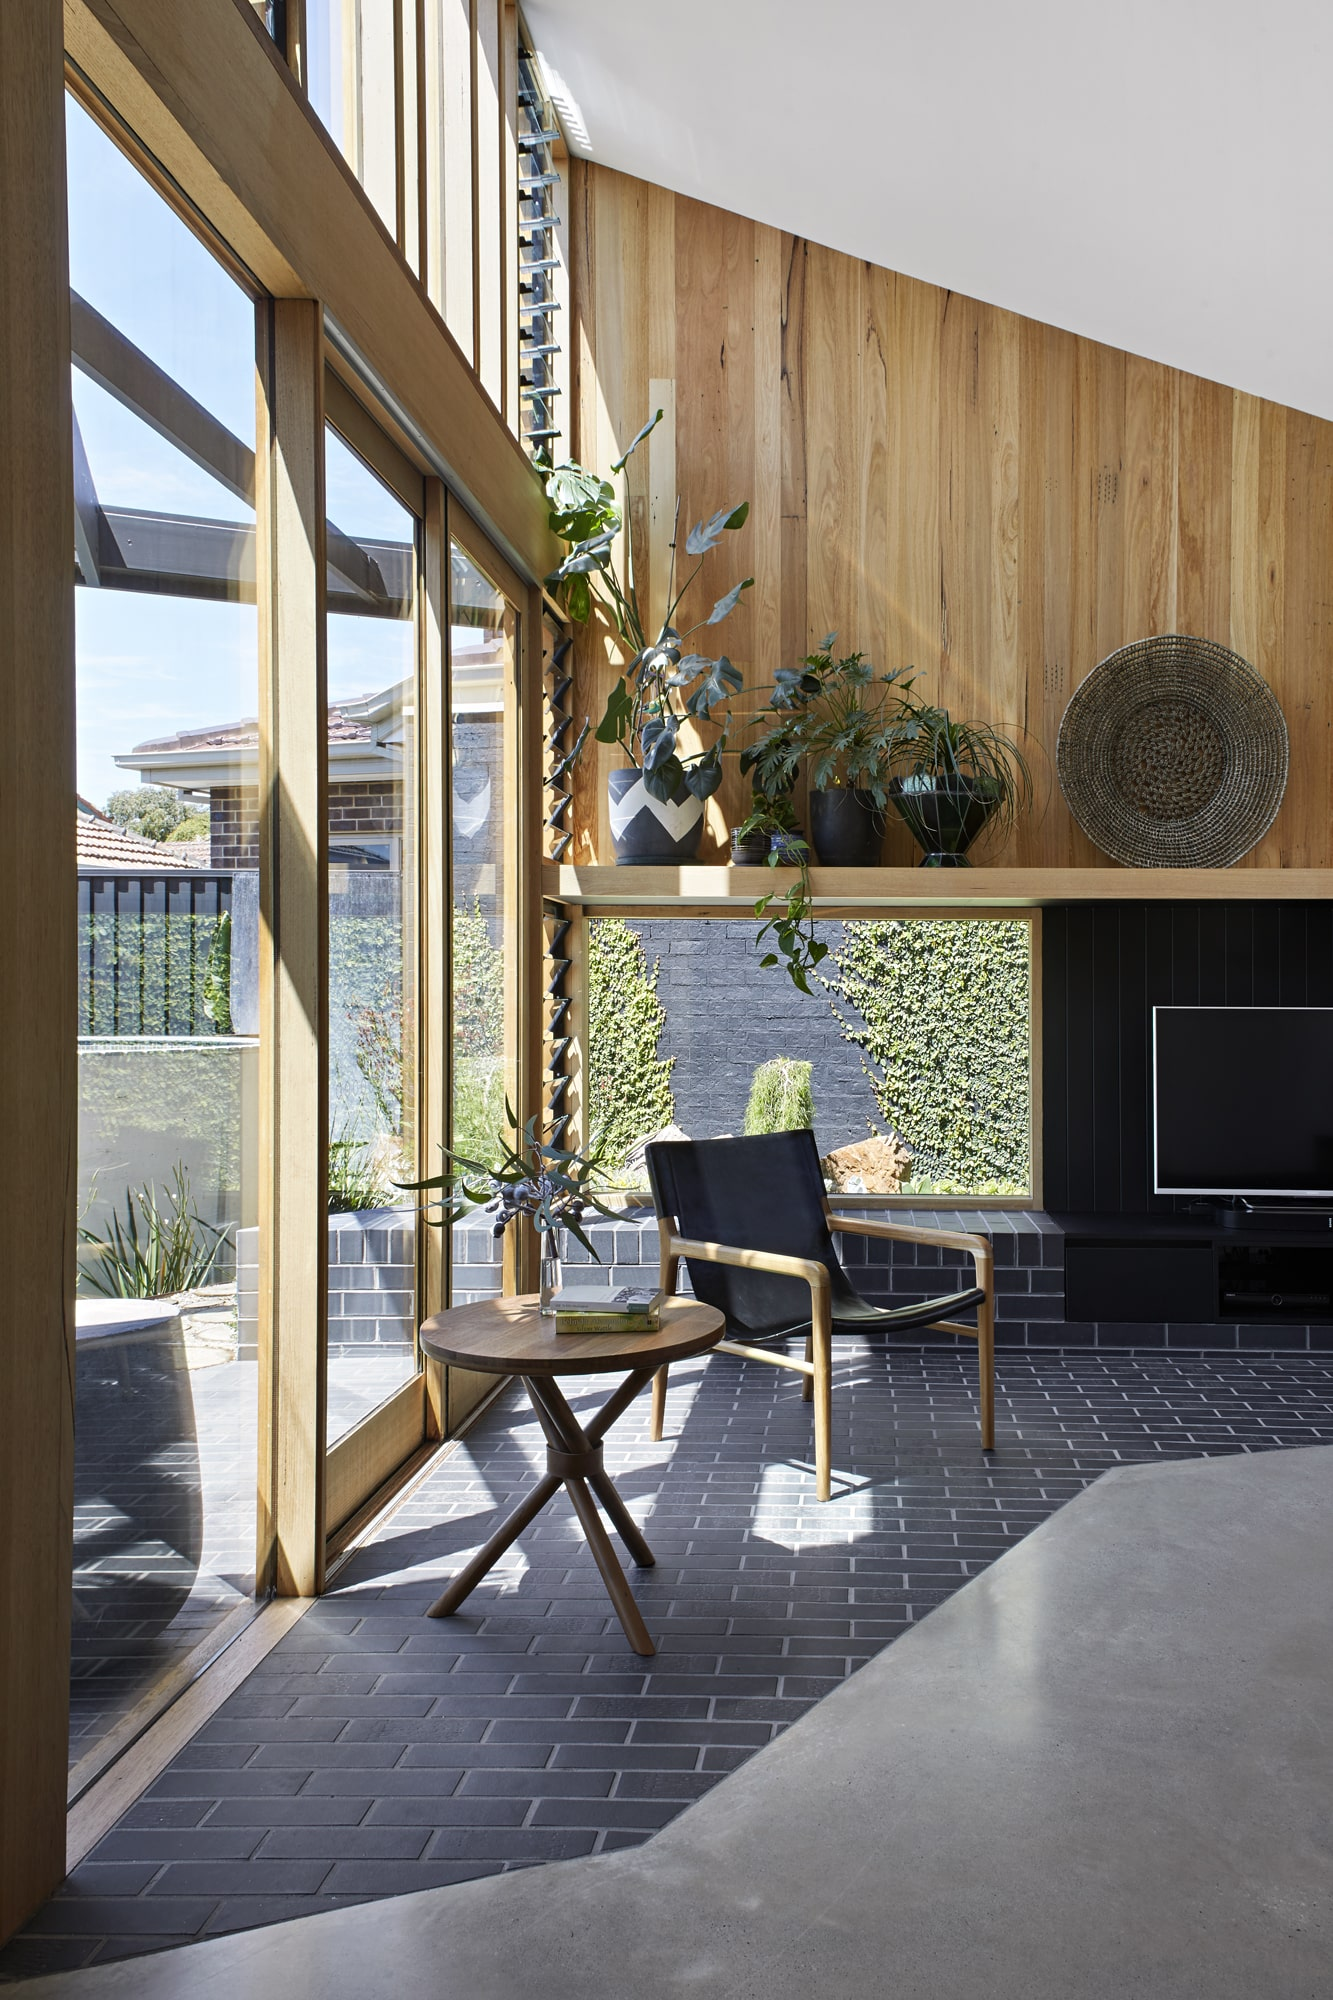 While A Separate Living Area In The Front Room Takes Advantage Of The Existing Corner Windows And A Feature Fireplace.